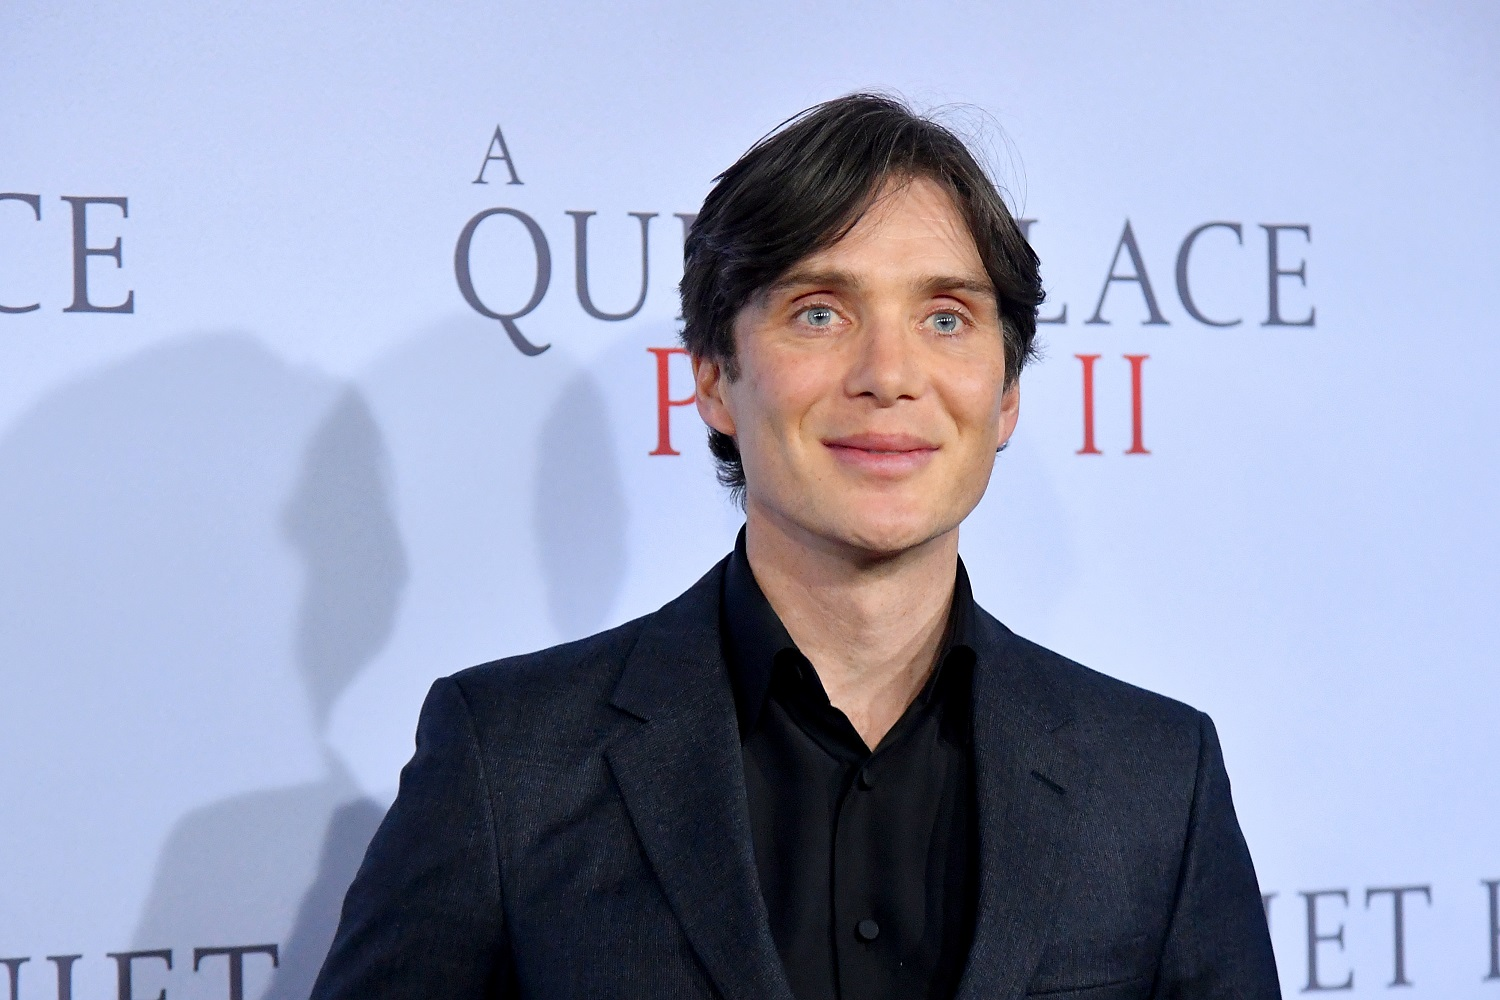 Actor Cillian Murphy poses for photographers at the premiere of 'A Quiet Place Part II.'